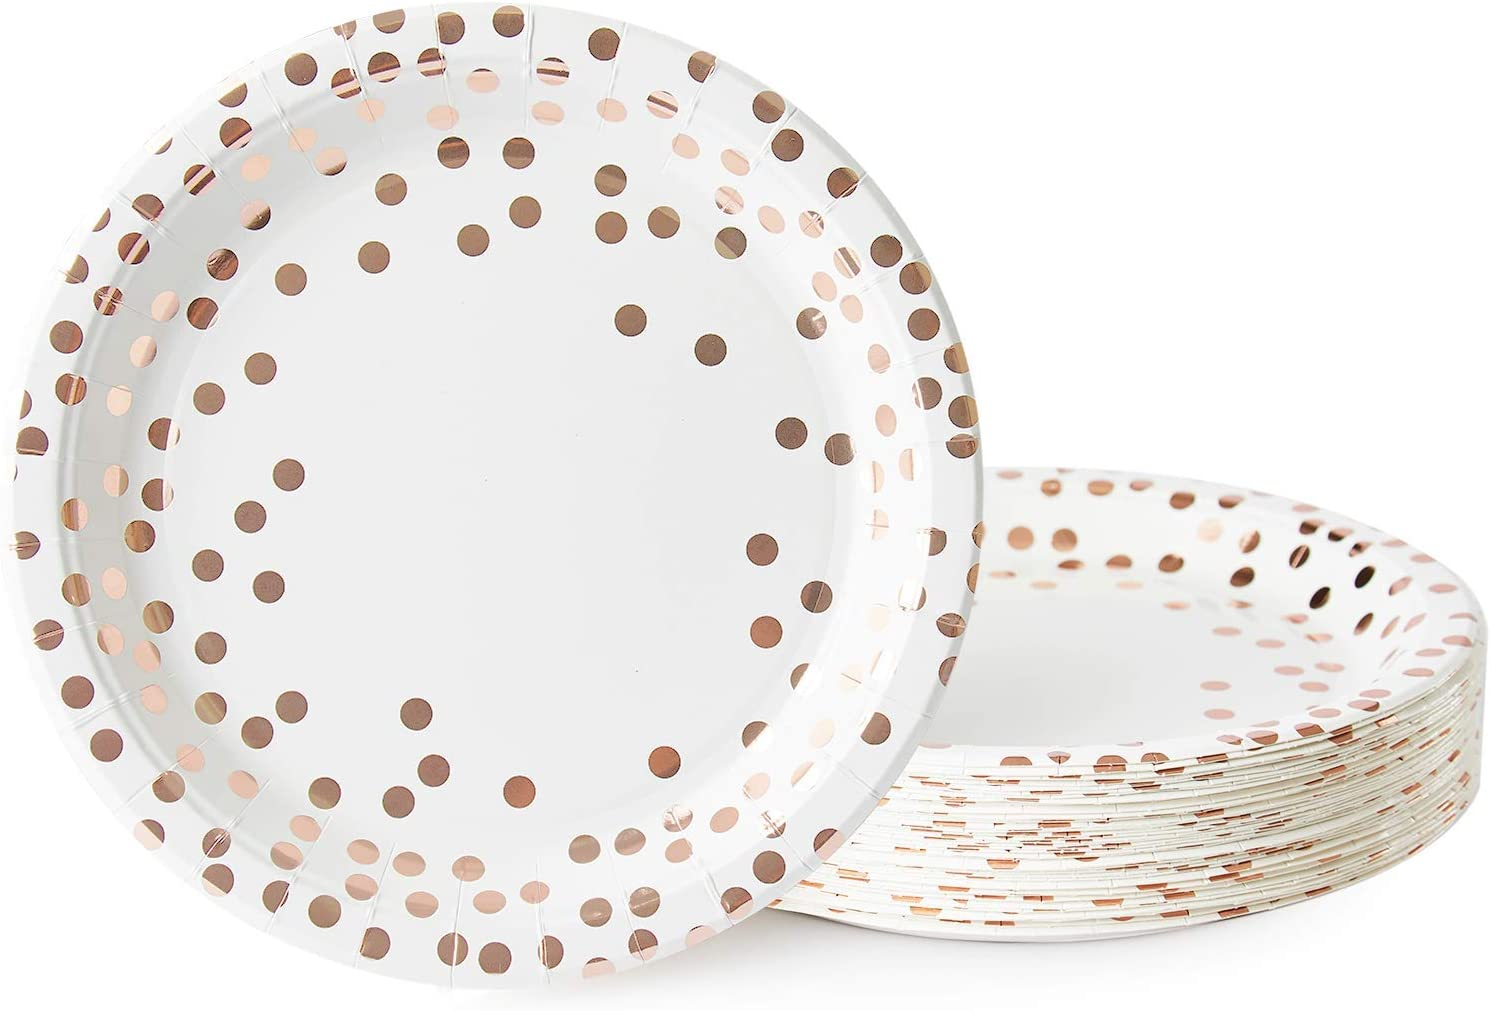 Party Paper Plates, 50-Pack Disposable White and Rose Gold Plates, Foil Polka Dots, 9-Inch